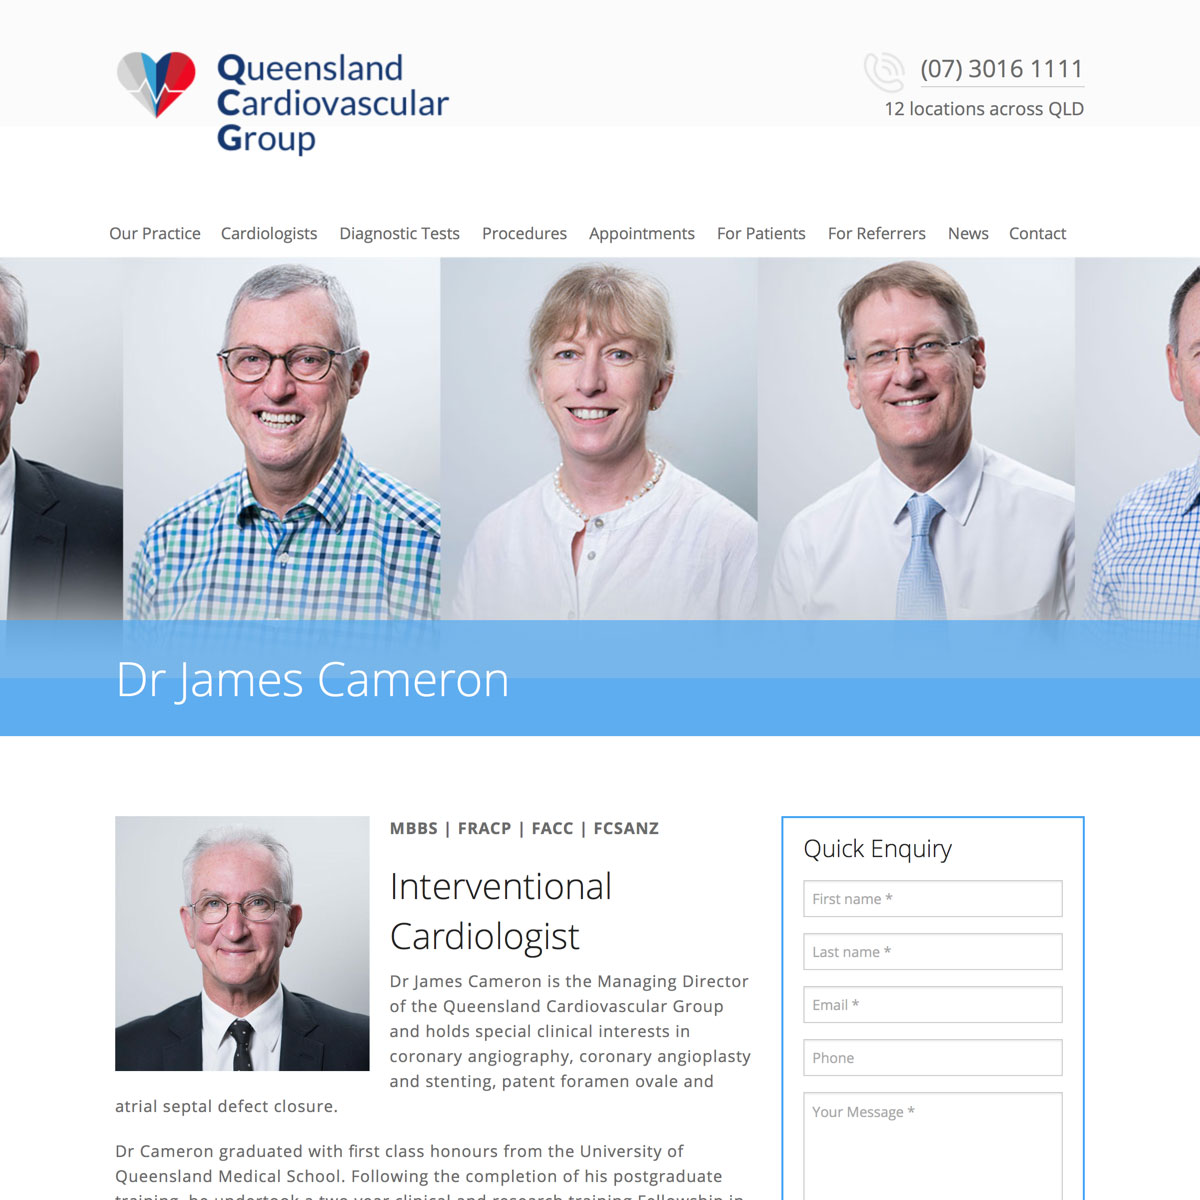 Queensland Cardiovascular Group - Cardiologist Bio